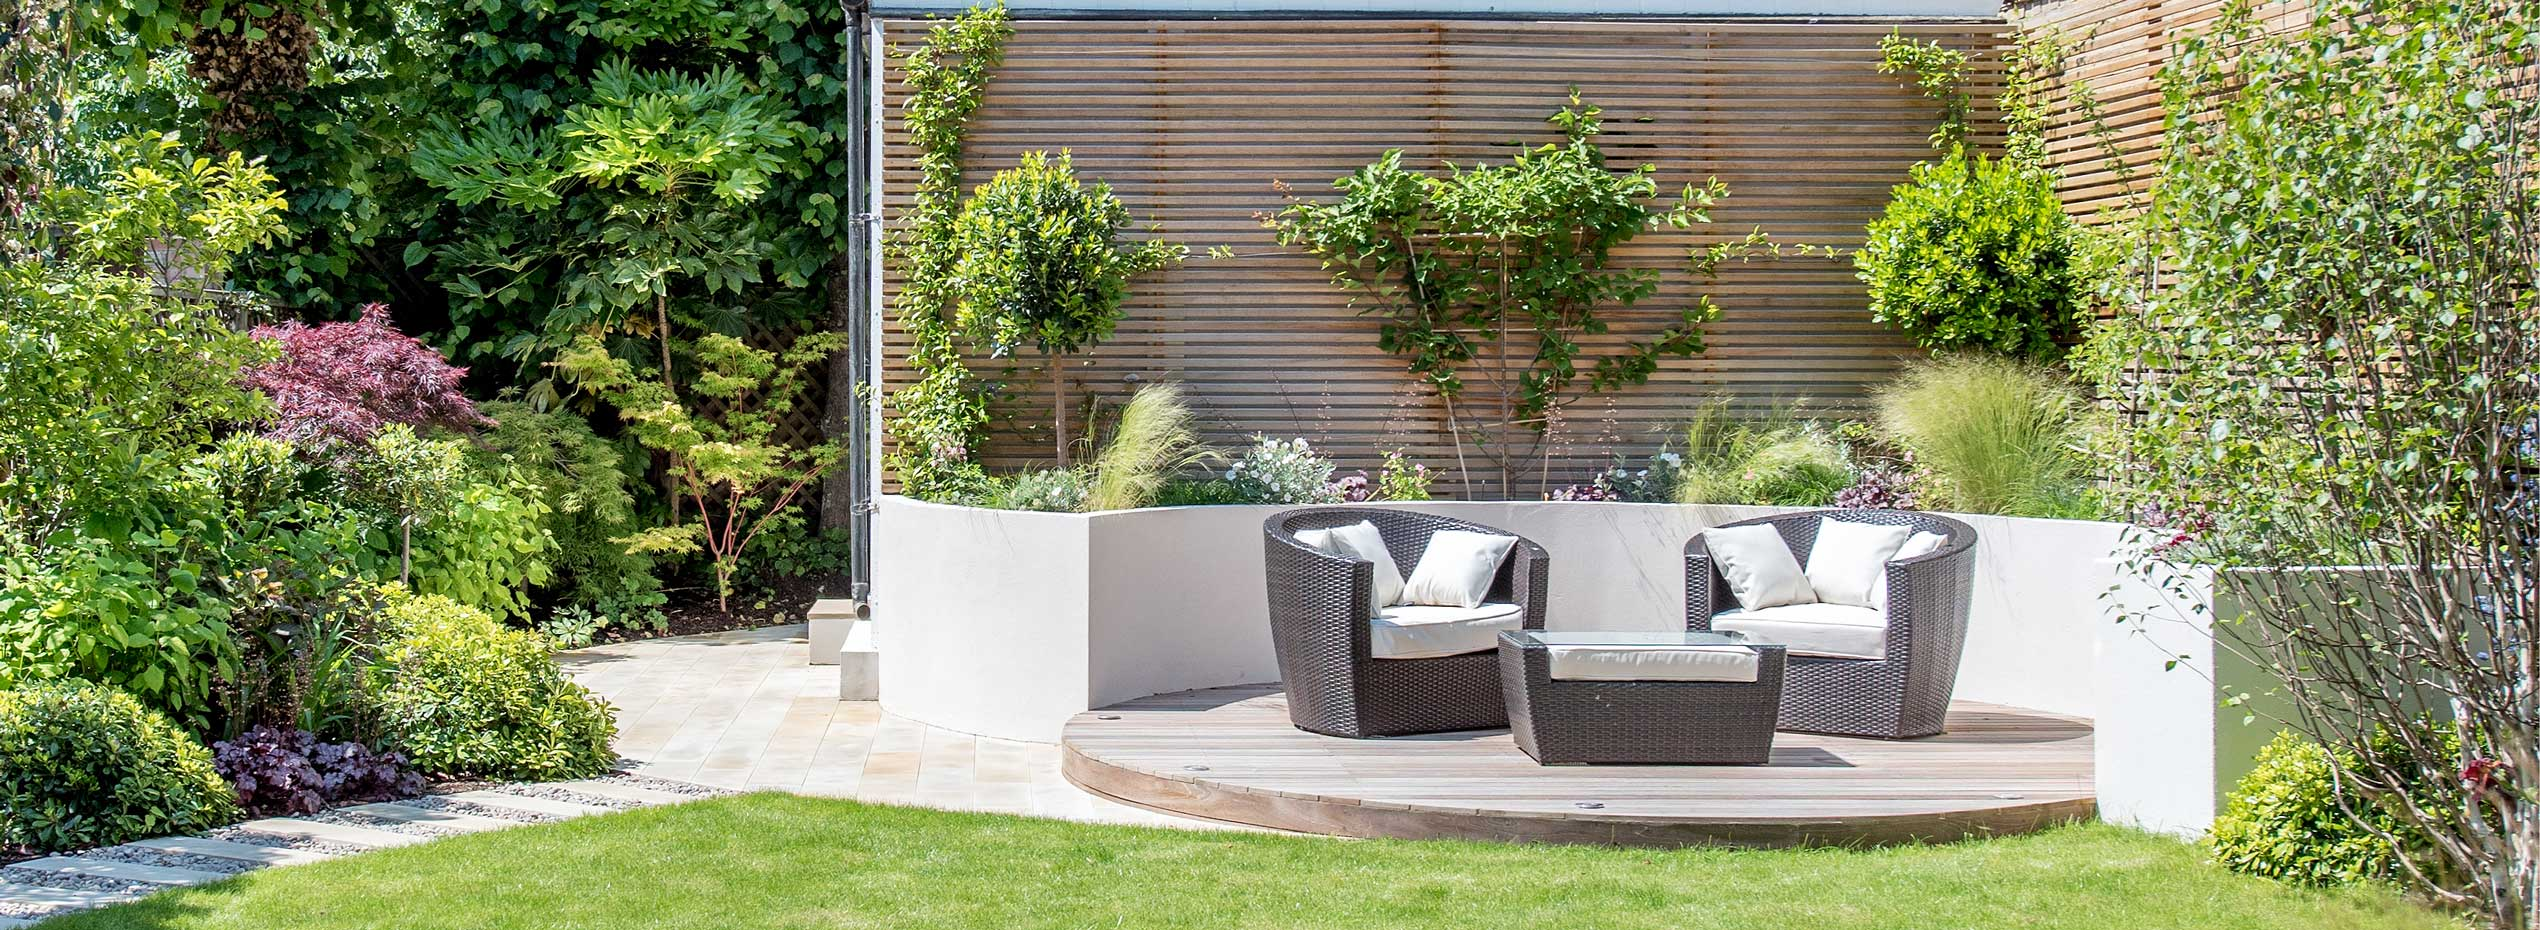 Kate Eyre Landscape Garden Design London